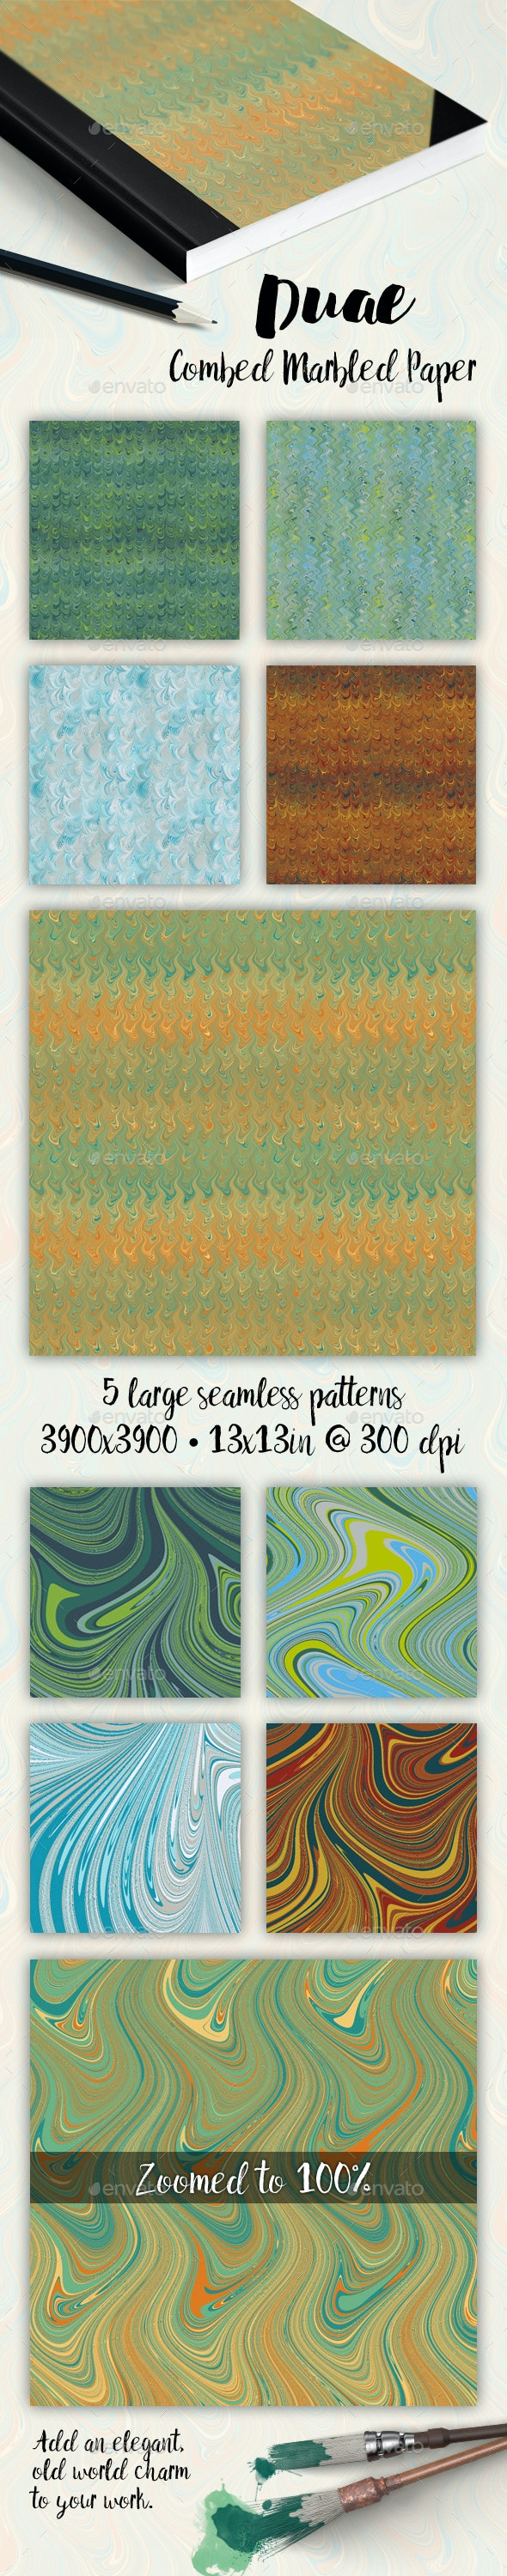 Combed Marbled Paper - Duae - Patterns Backgrounds